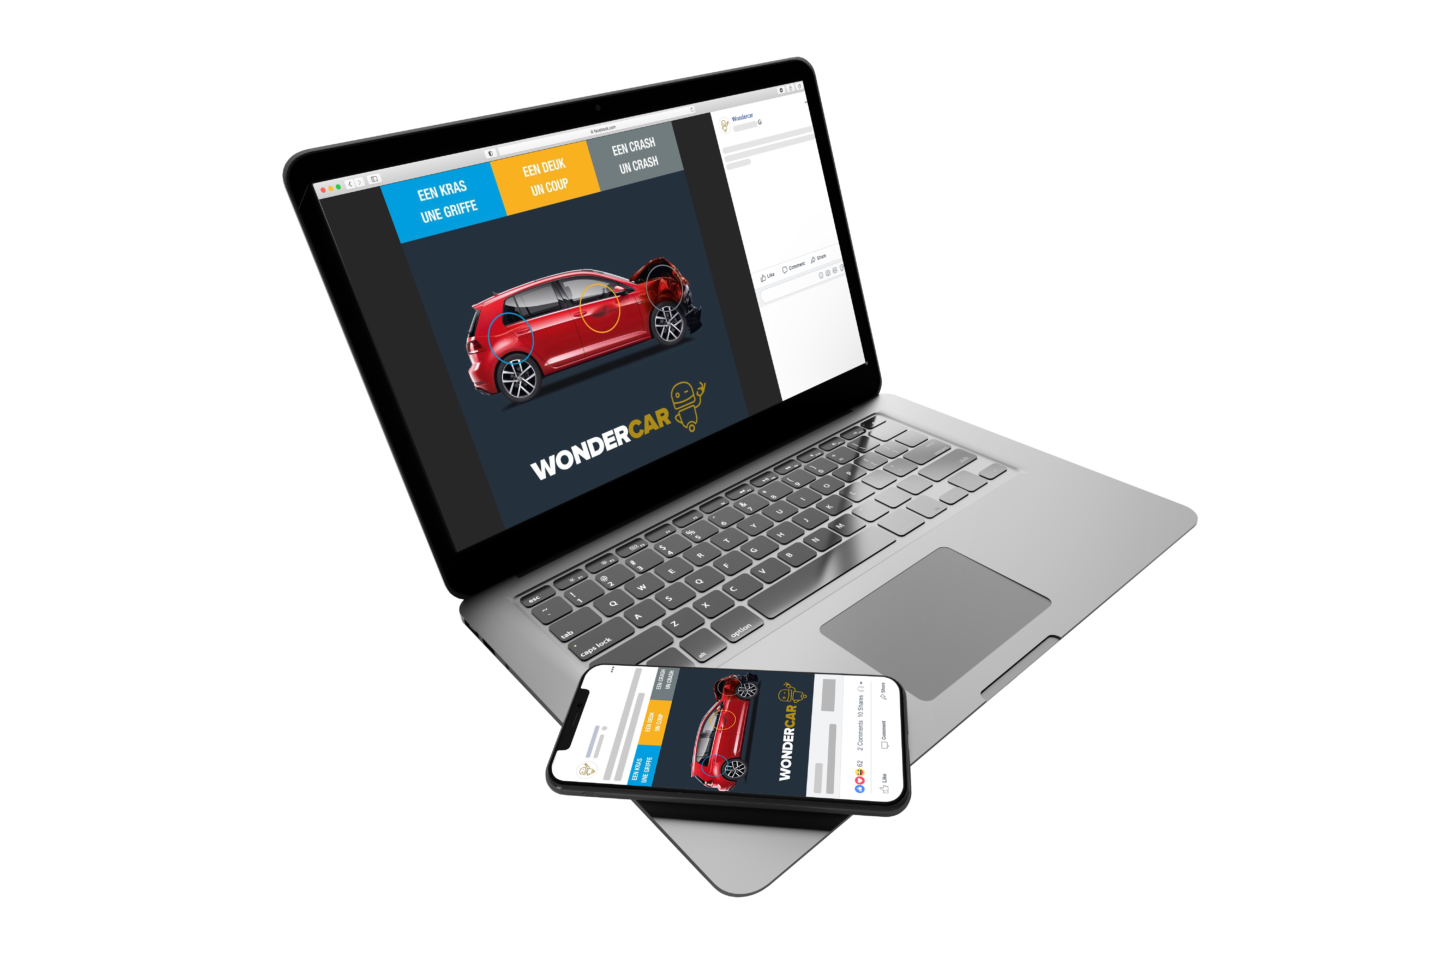 Mockup campaign wondercar case the crew agency Brussels